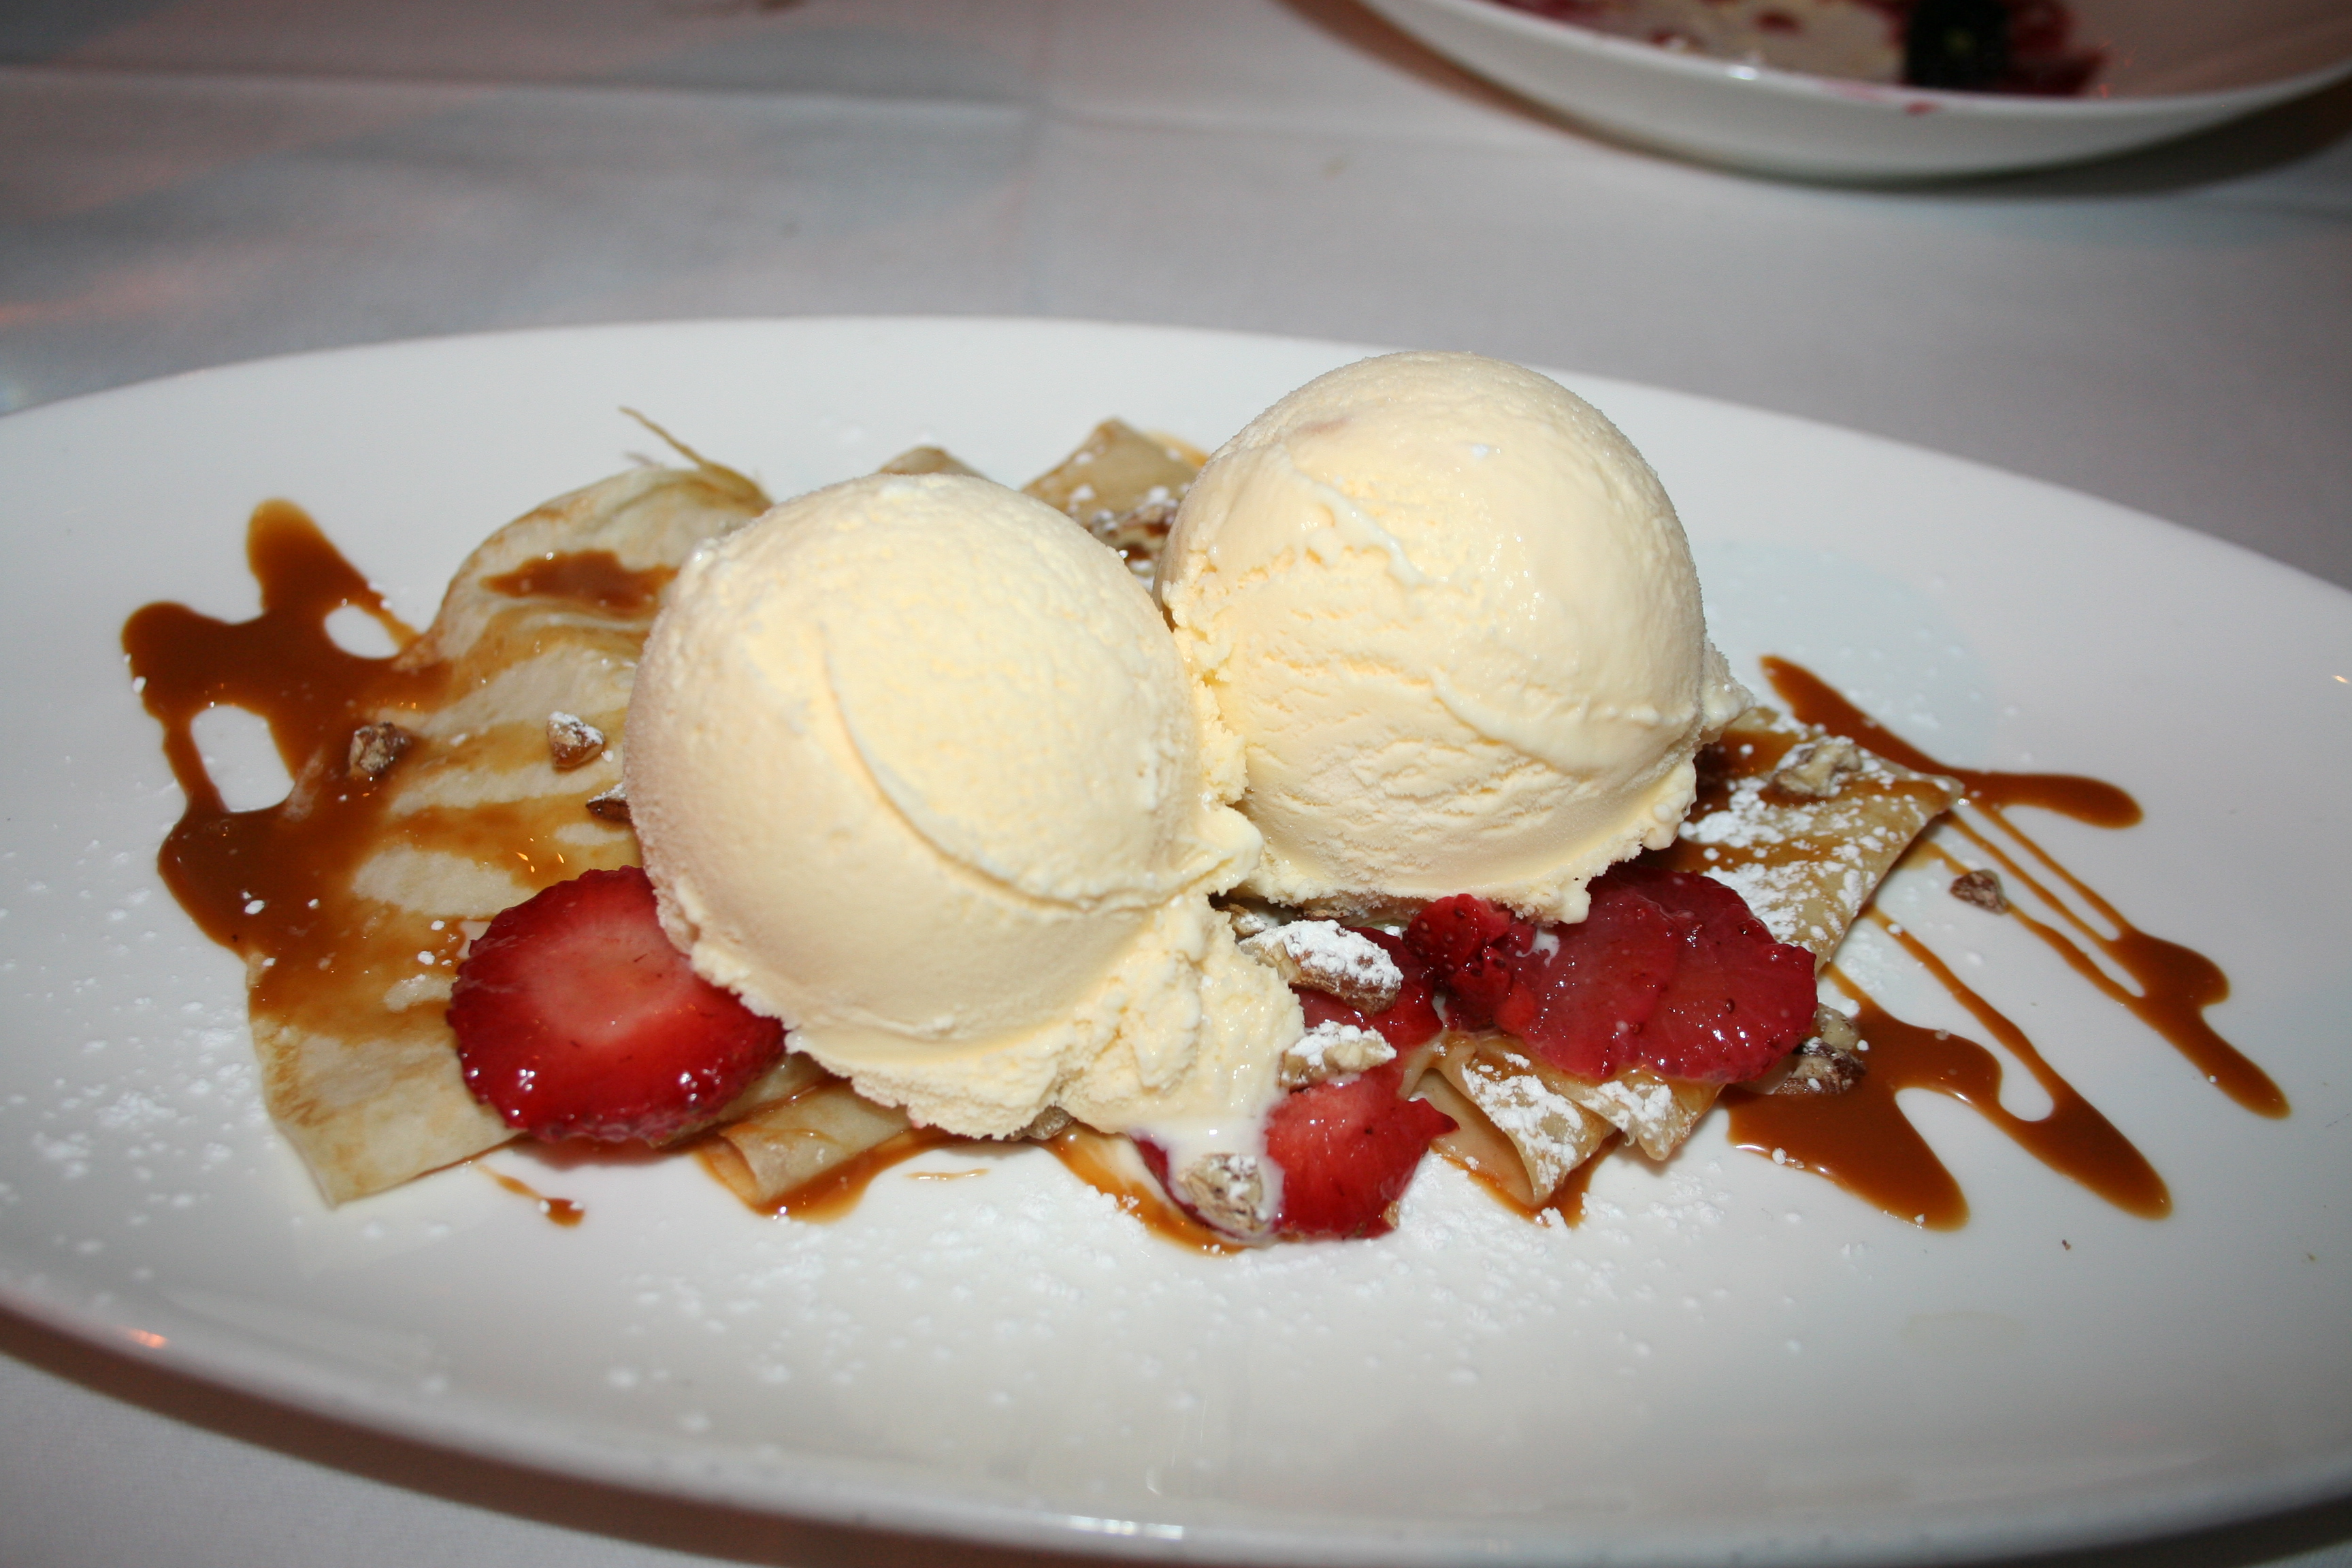 Crepas con cajeta: Crepes with caramel, strawberries and Mexican vanilla ice cream. (Photo: Mark Heckathorn/DC on Heels)